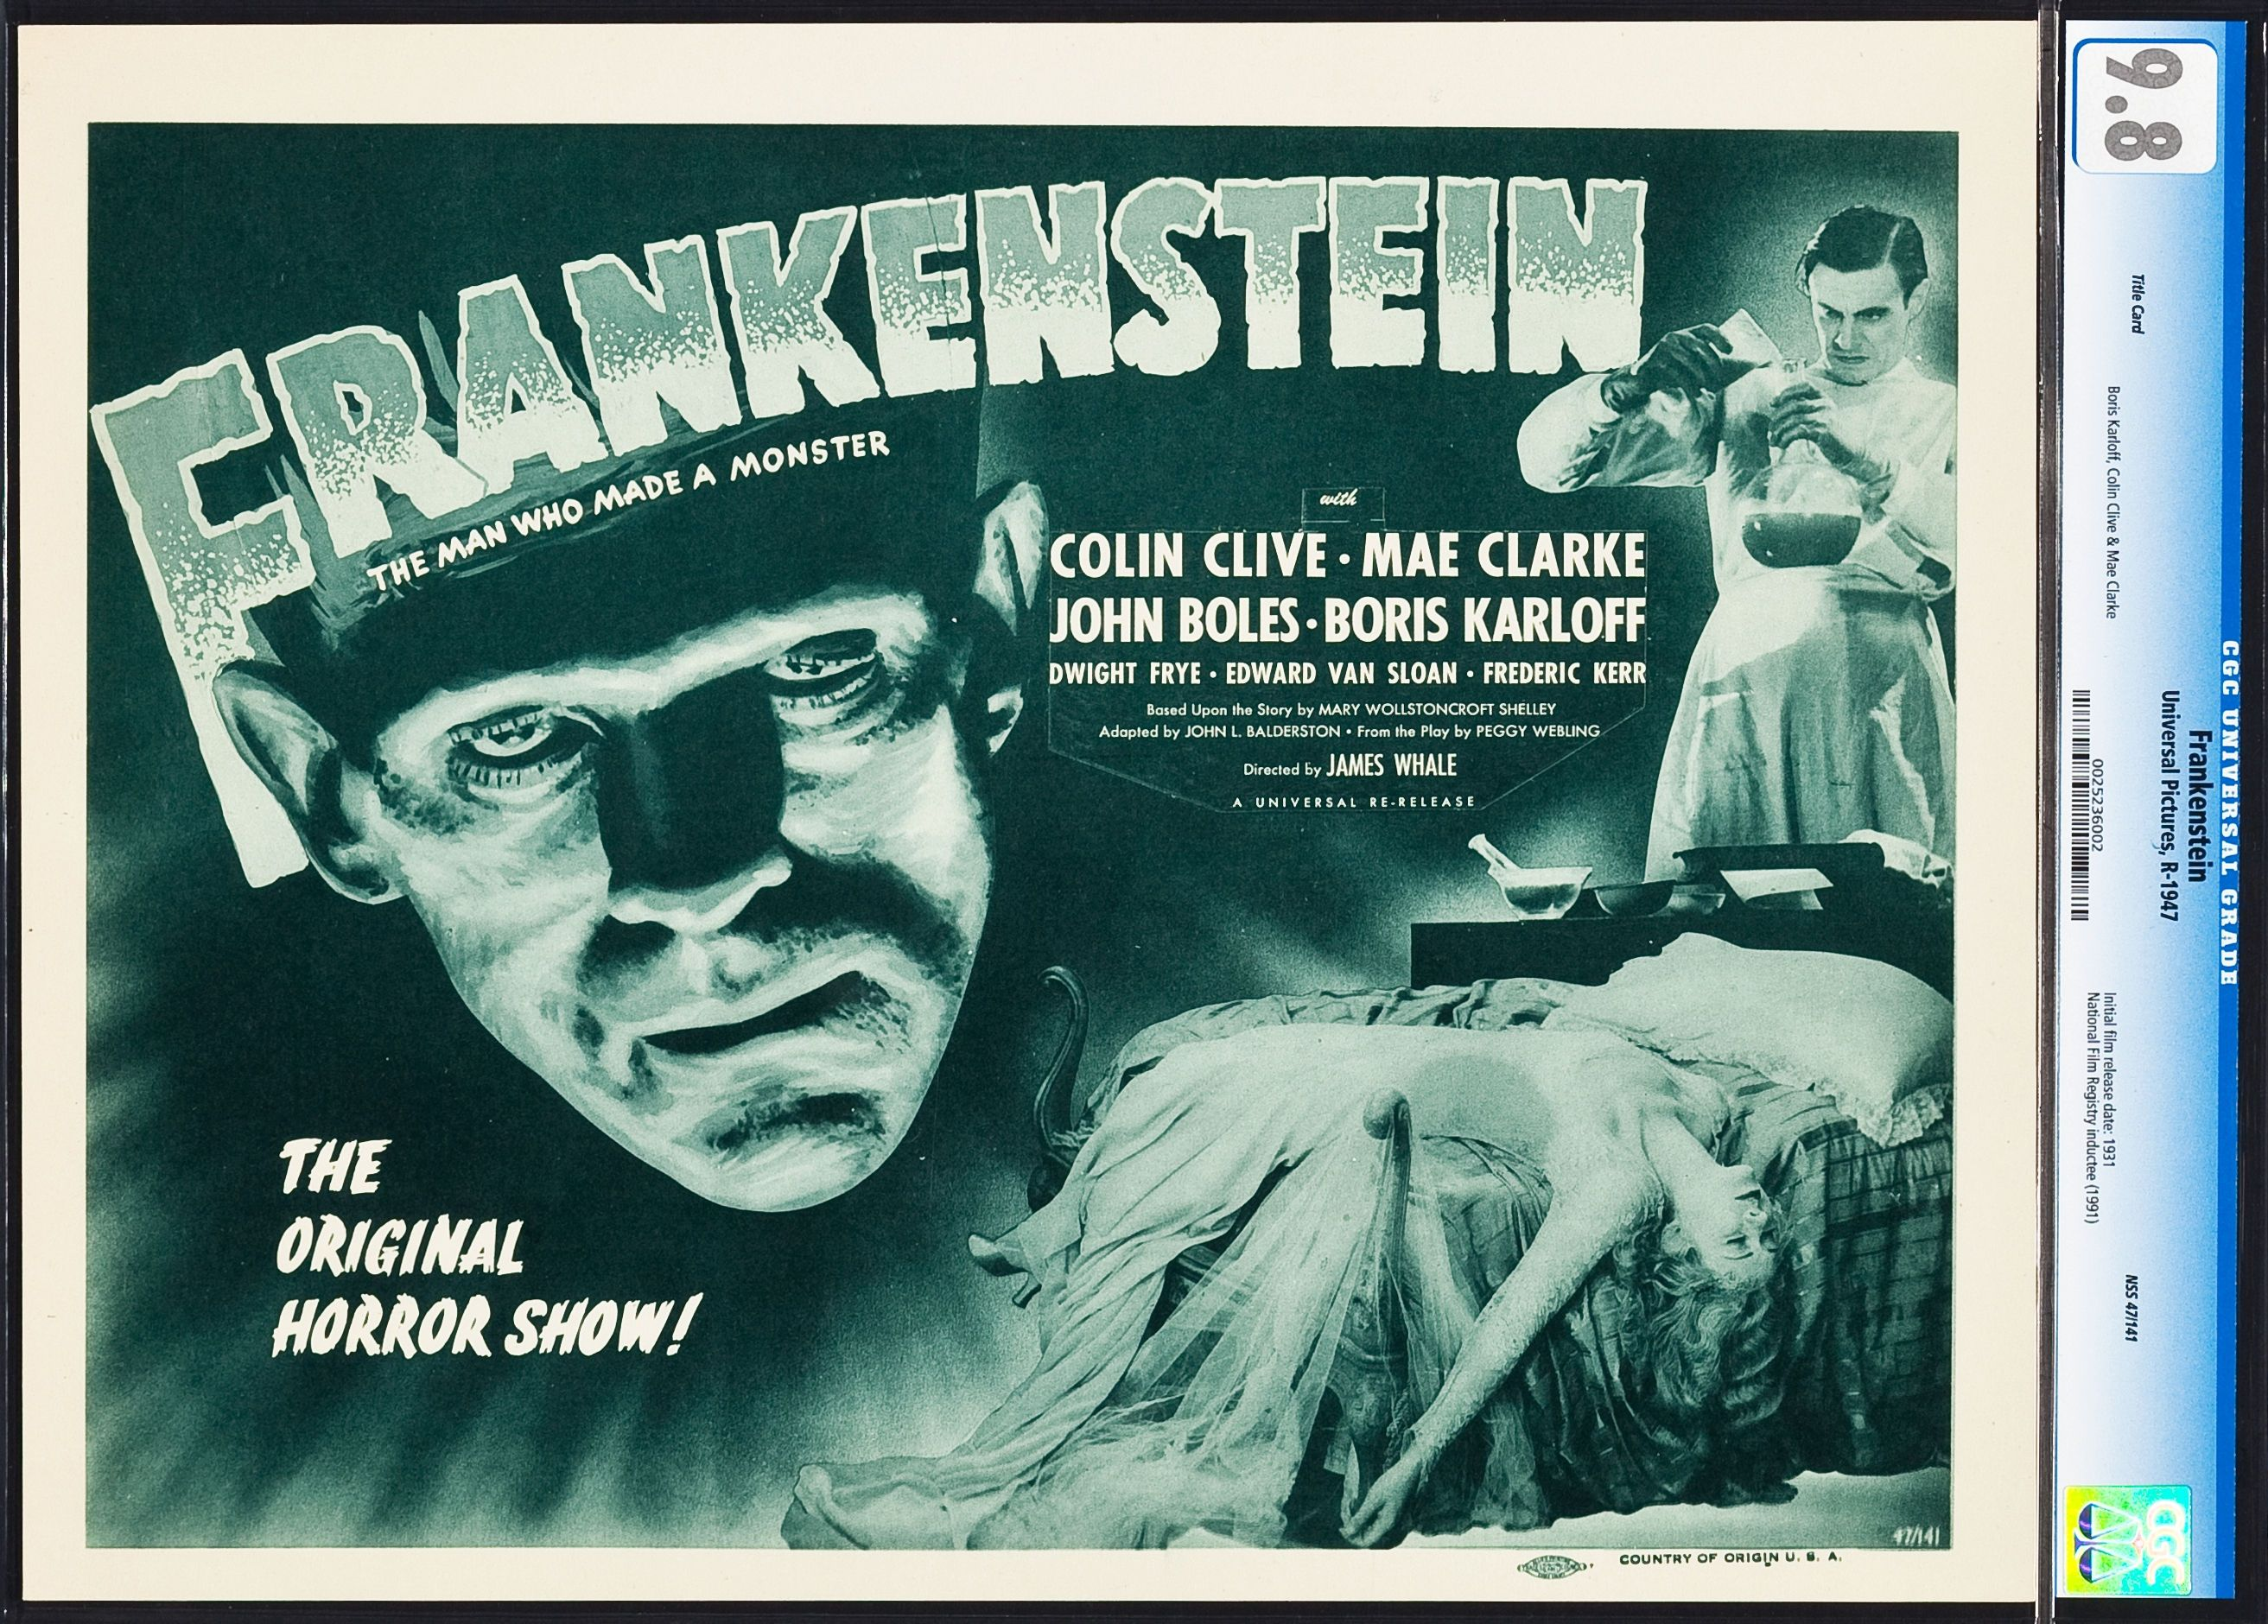 Frankenstein Universal R 1947 Cgc Graded Title Lobby Card Lot 86283 Heritage Auctions Monster Horror Movies Lobby Cards Frankenstein